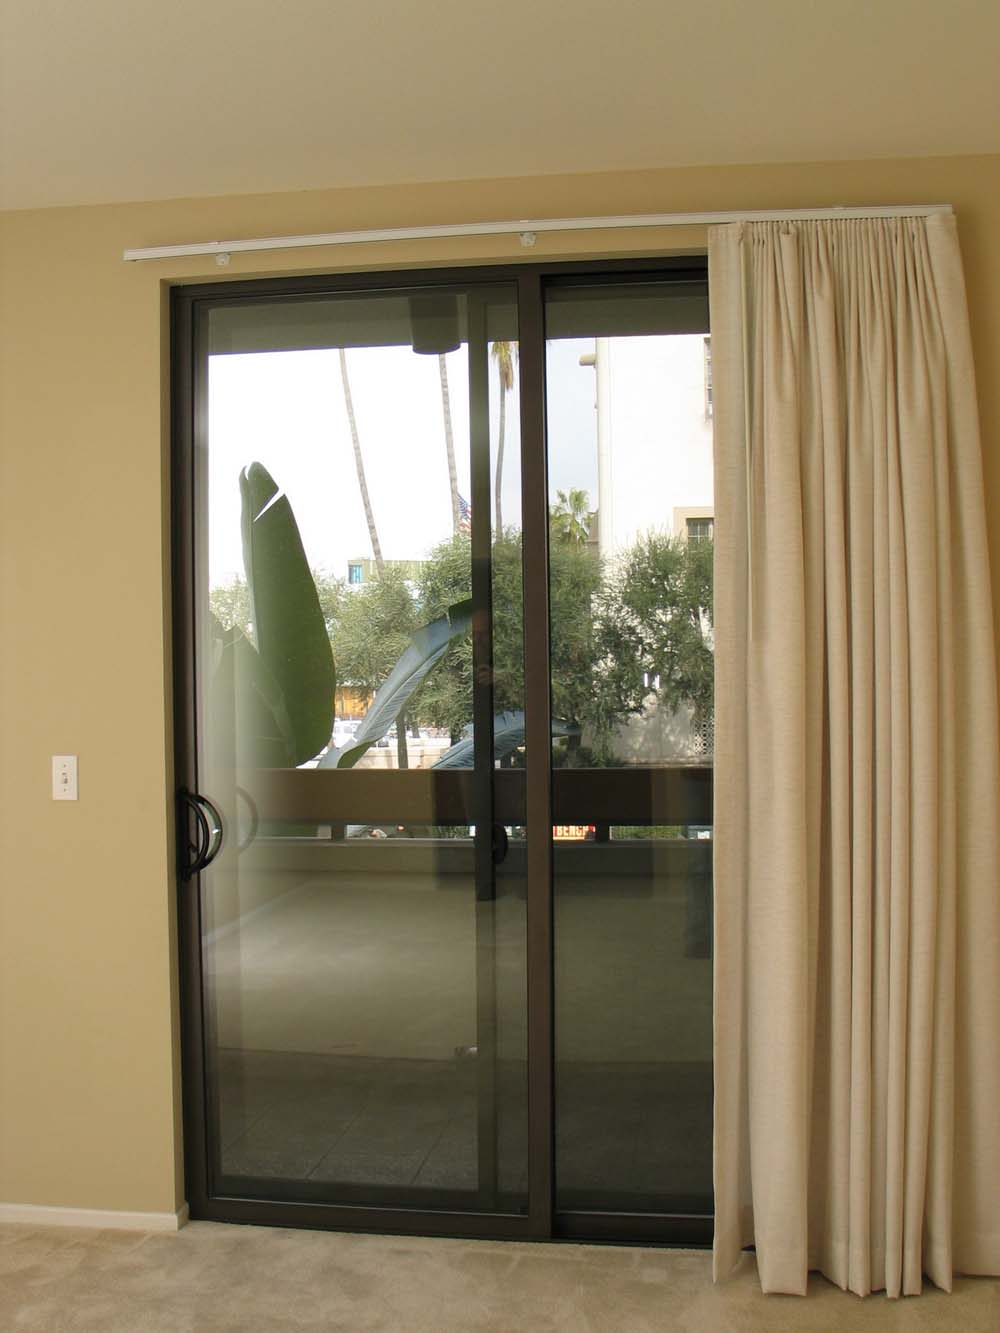 The same can be said for Soundproof Windows' sliding glass door